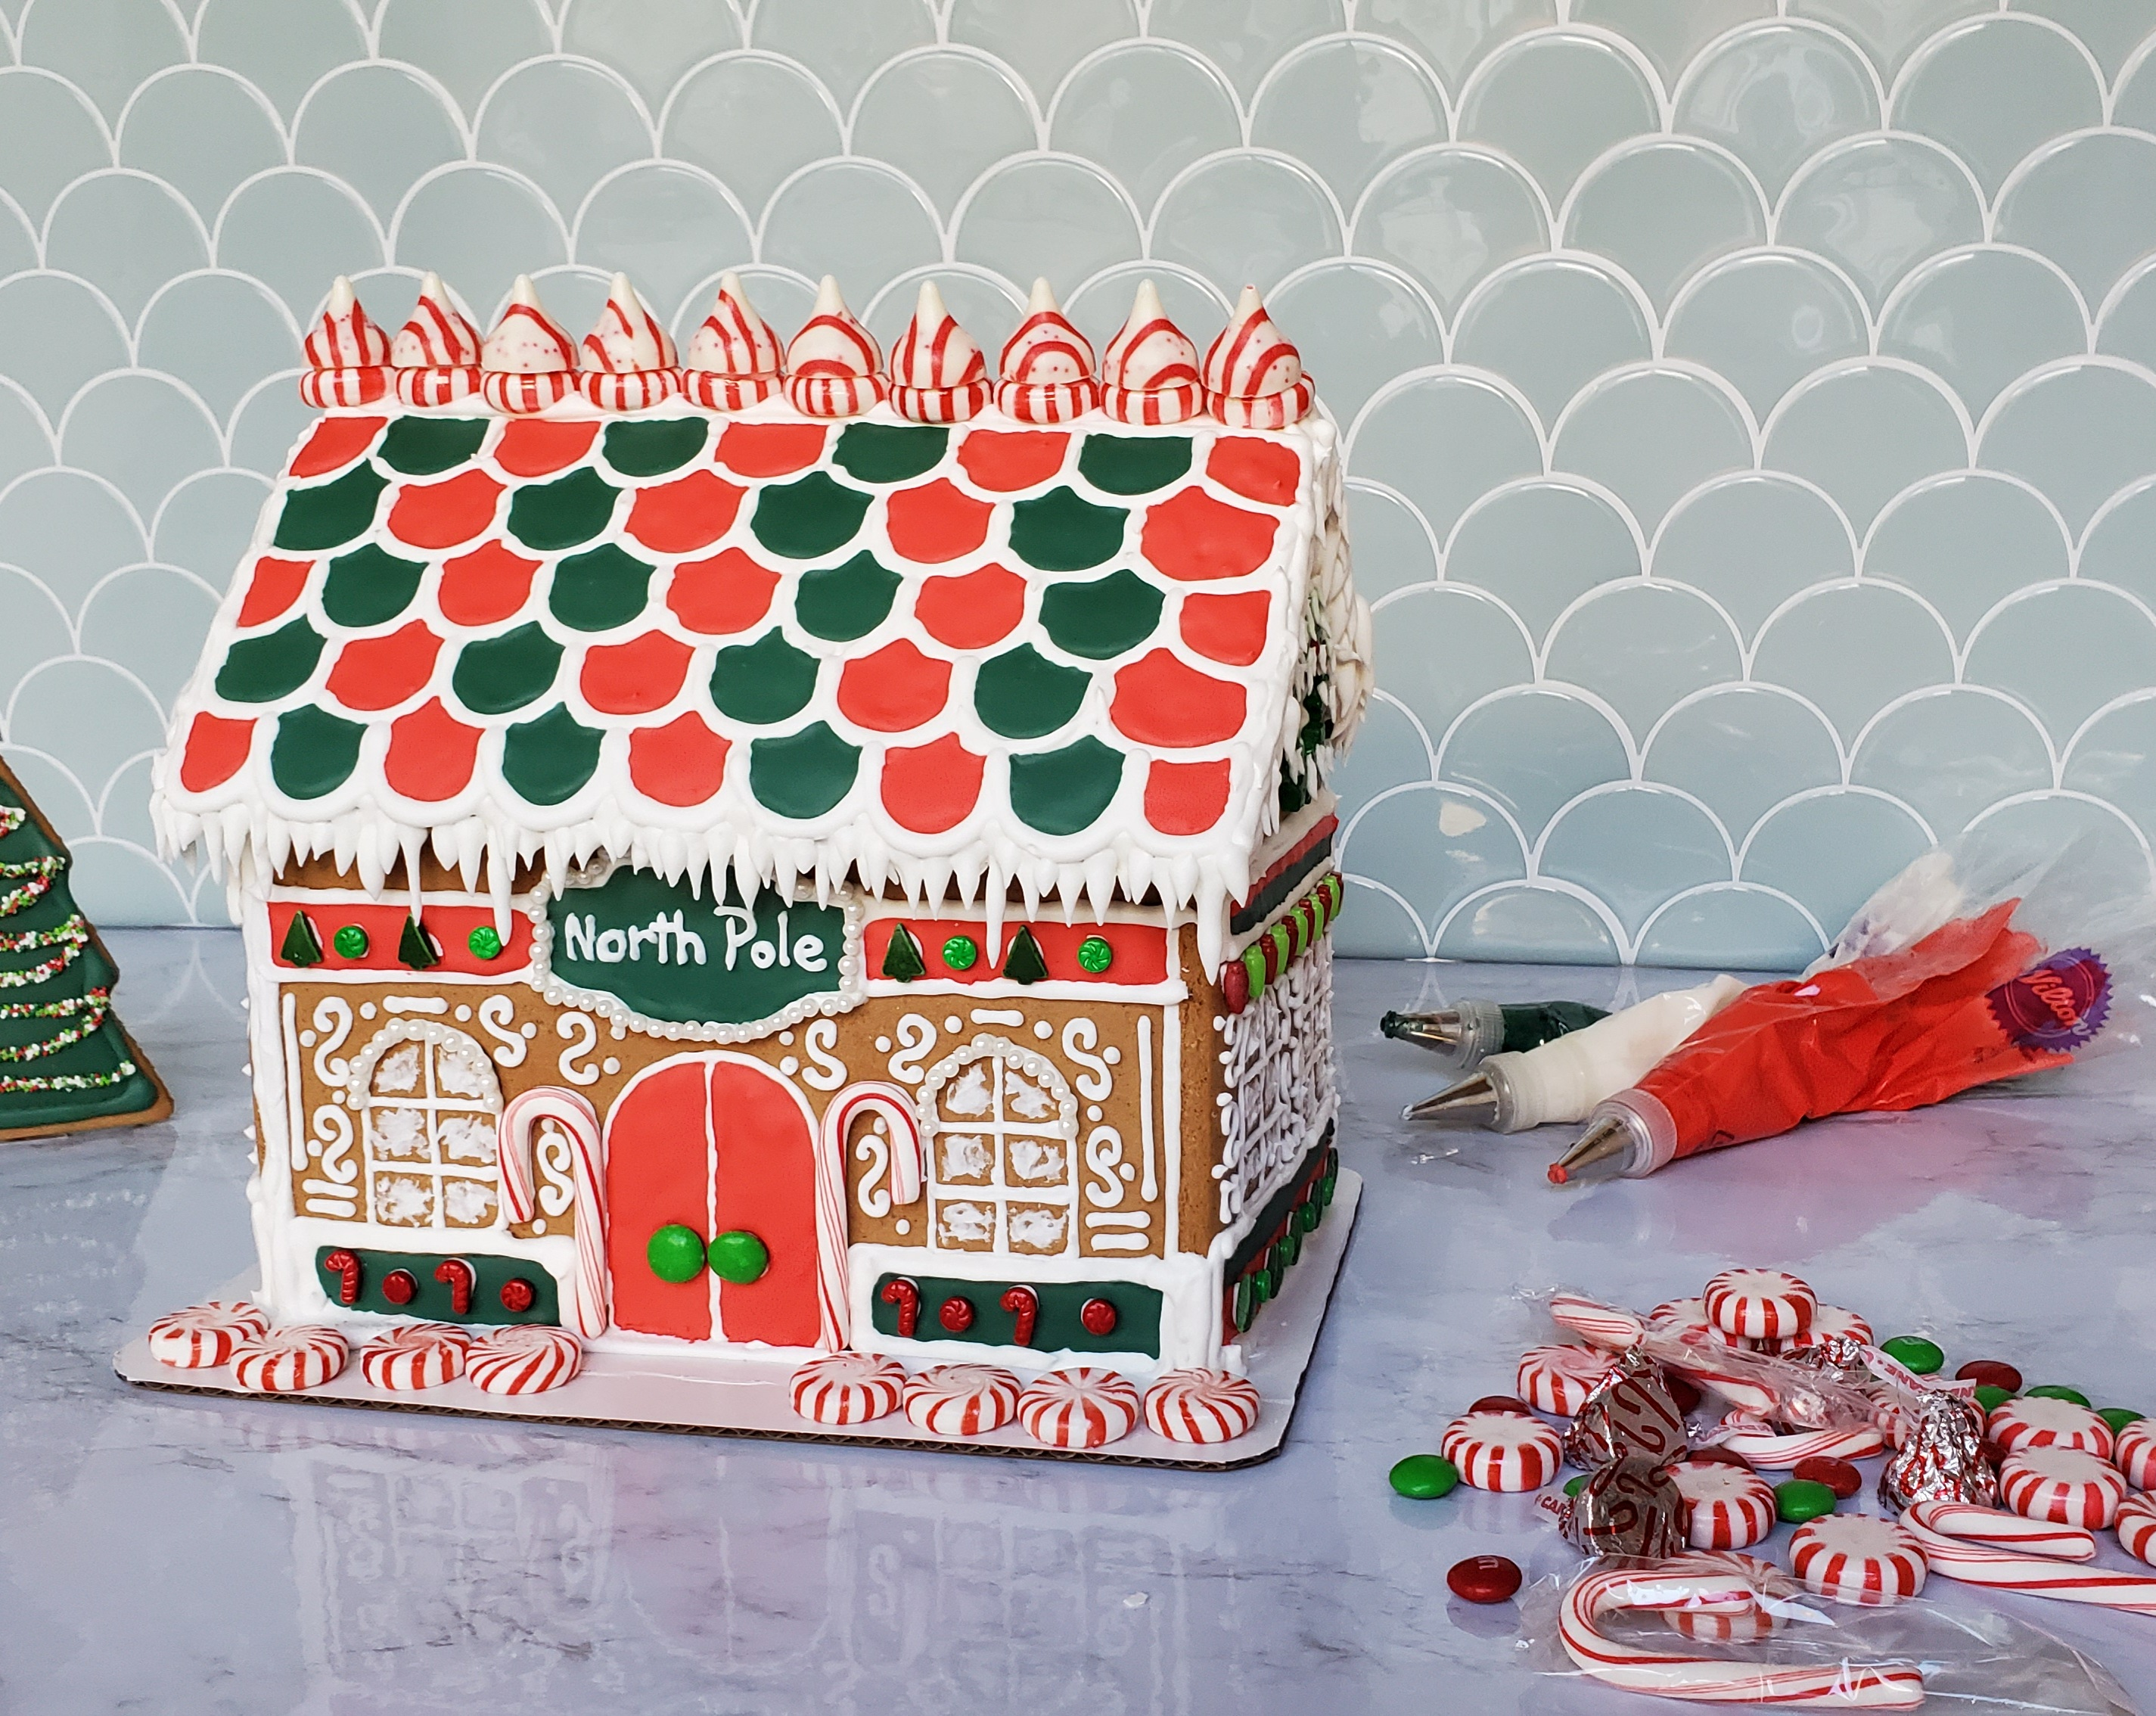 A gingerbread house surrounded by peppermints, candy canes, and royal icing.